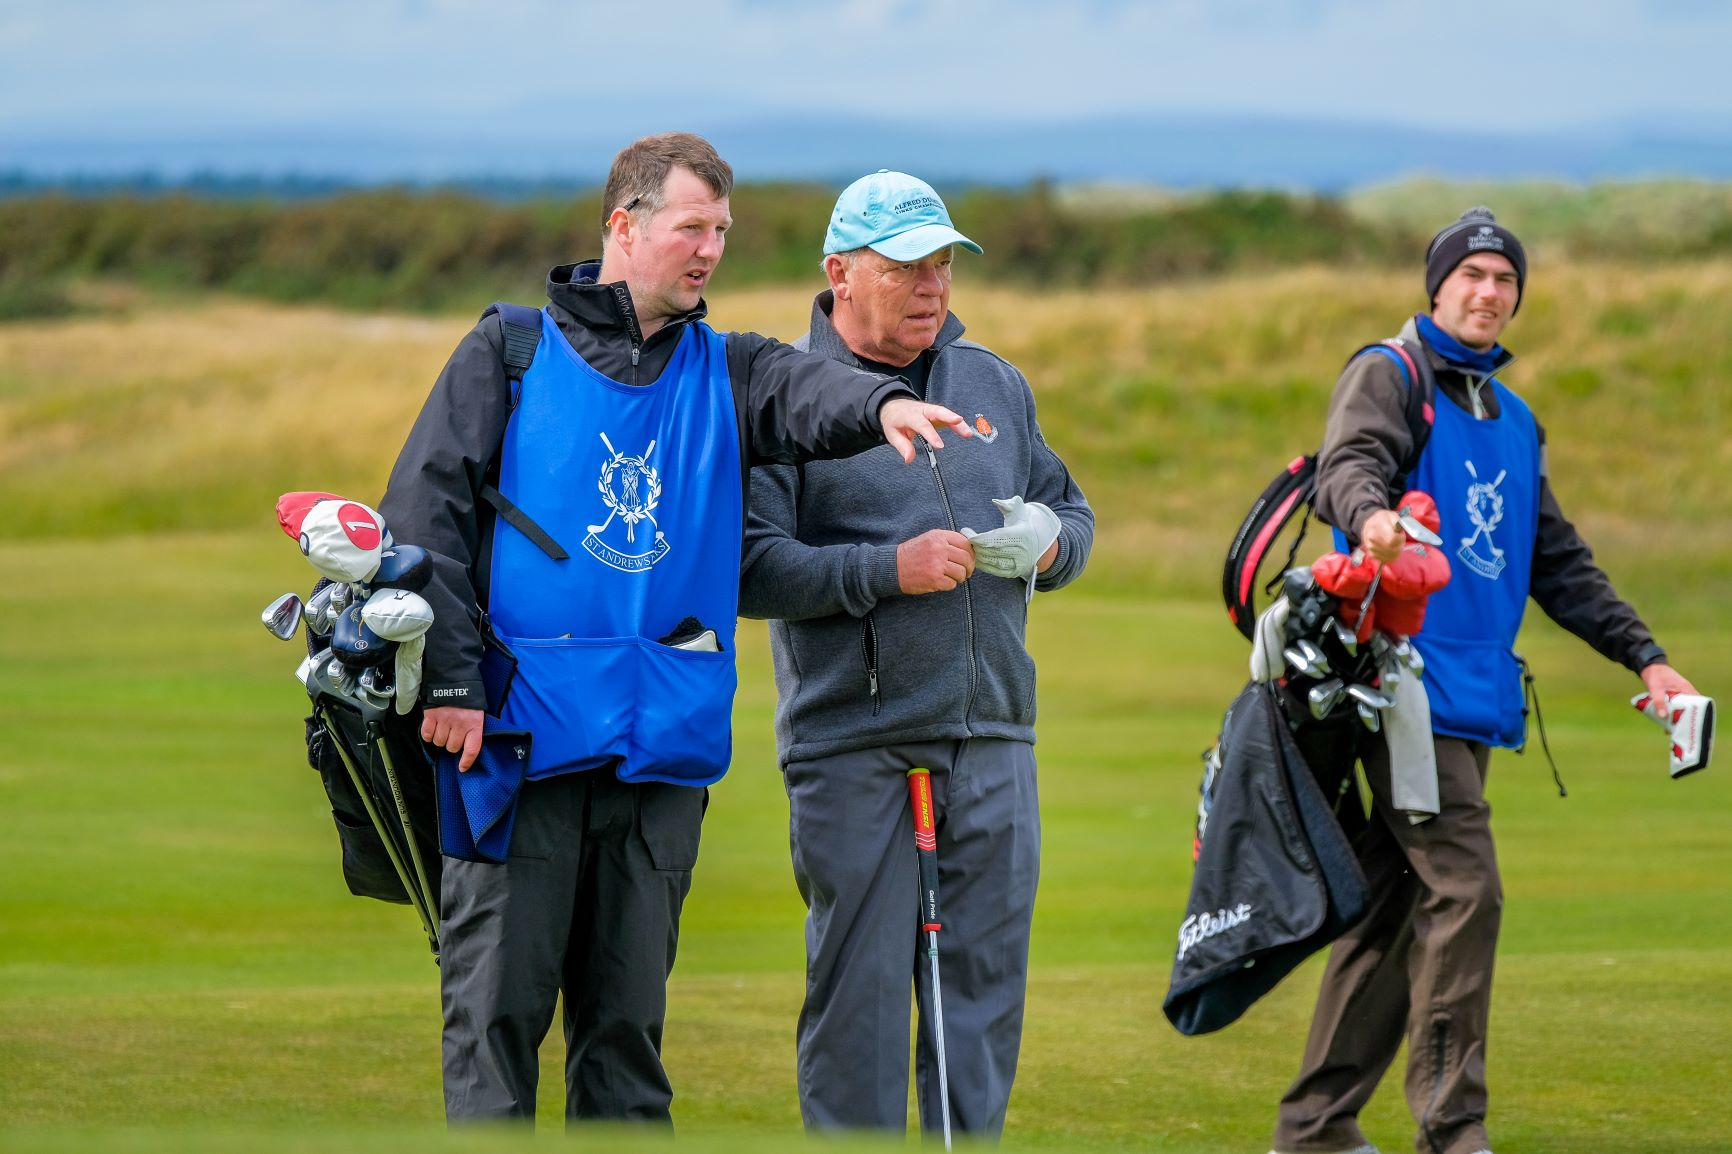 St Andrews Links caddie manager Fraser Riddler on the bag.